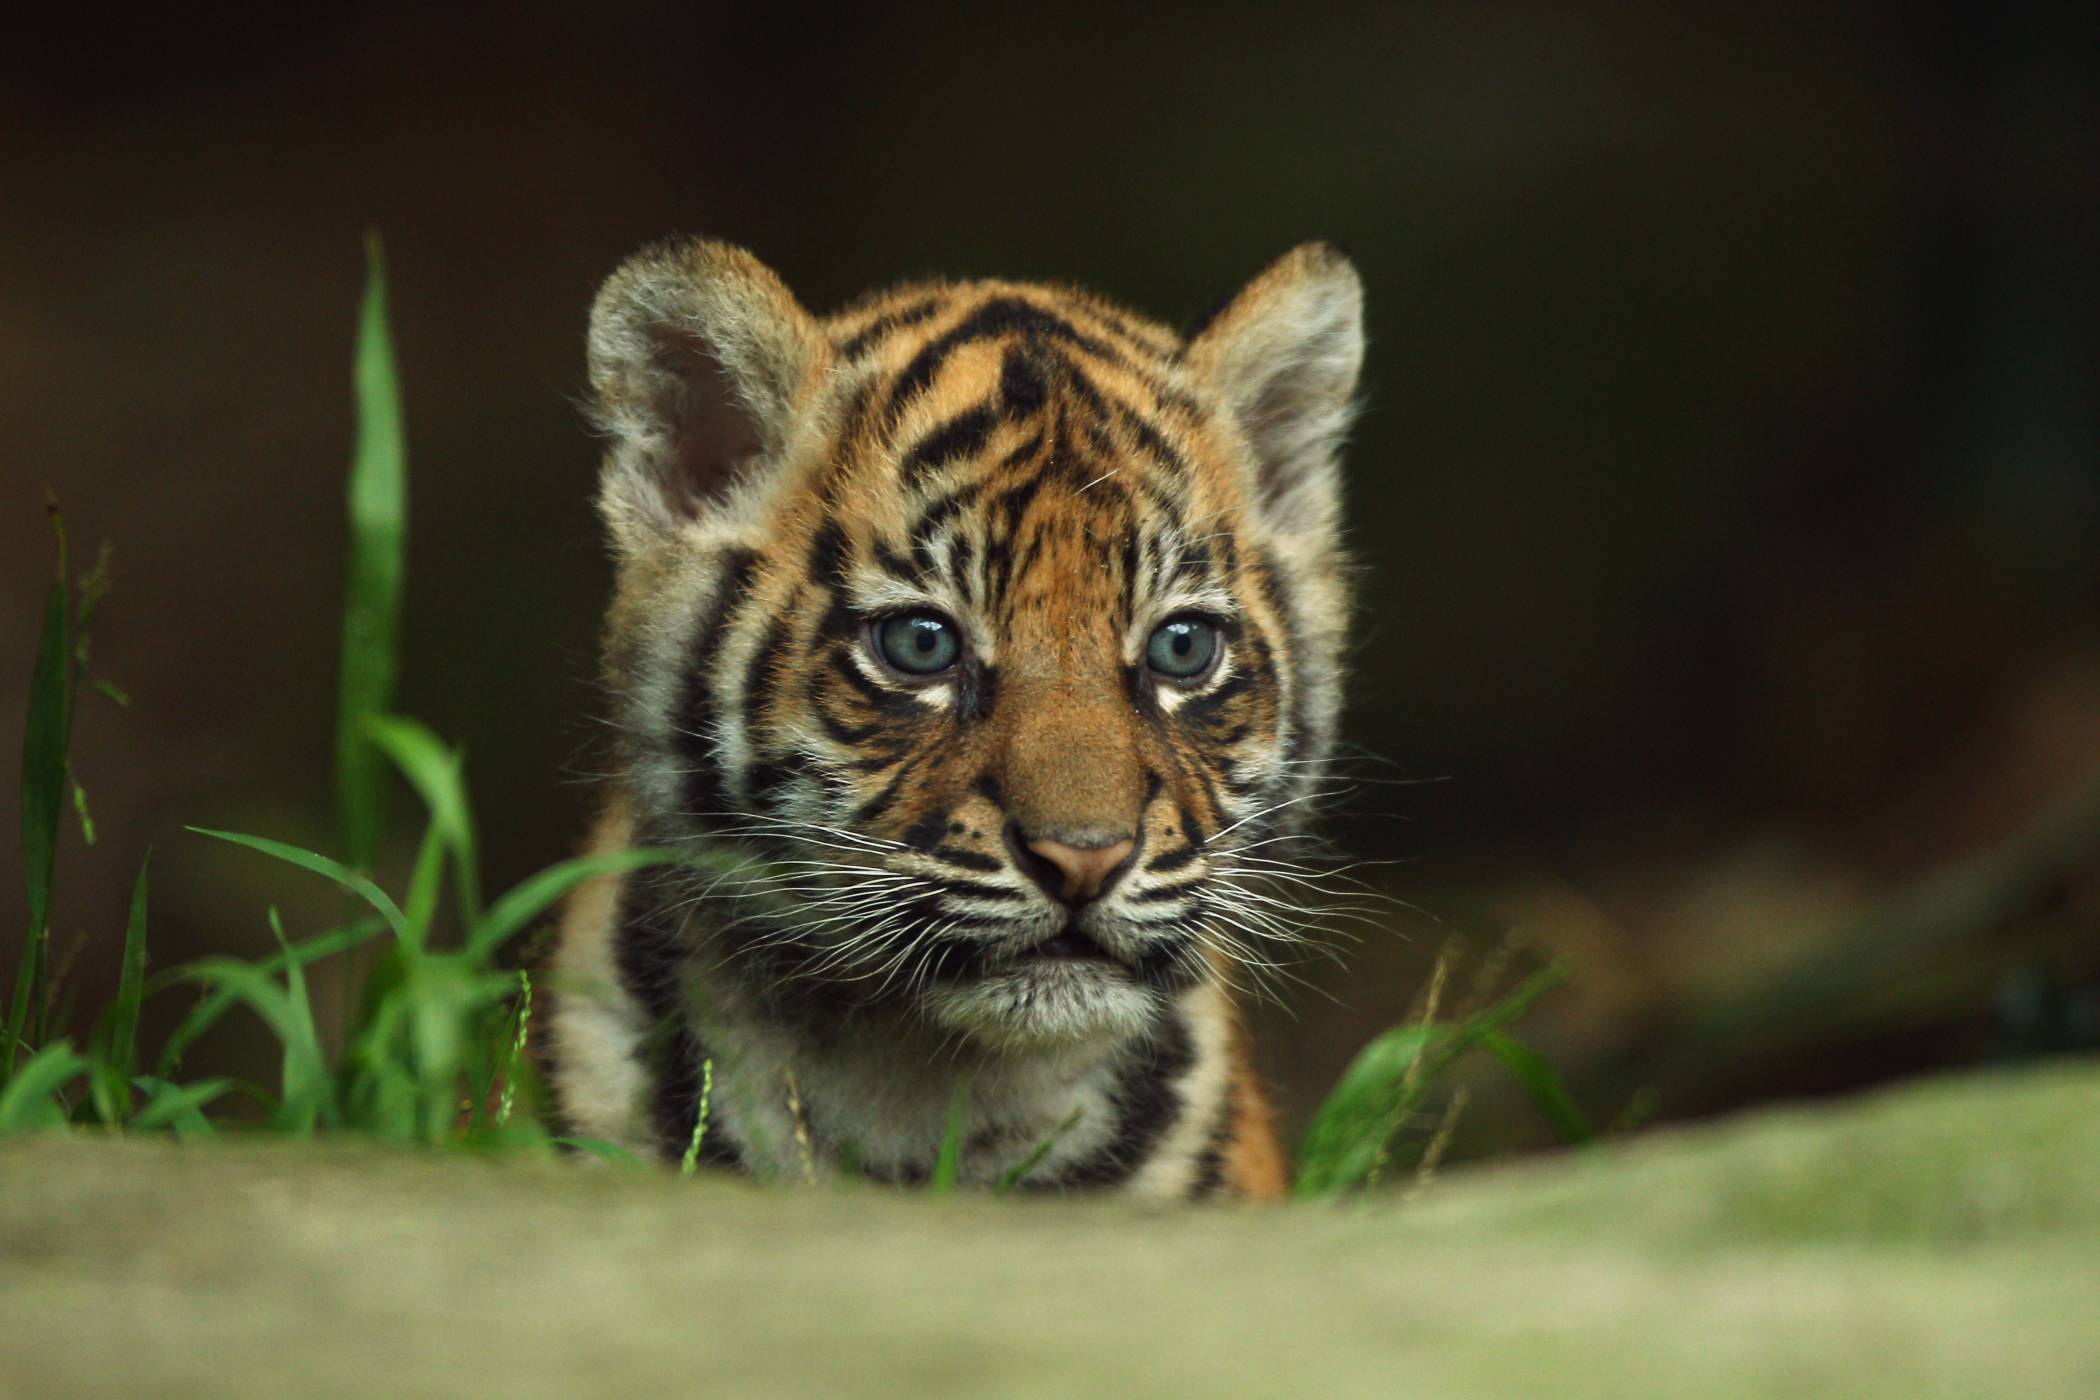 Baby Tiger Background HD Wallpapers 6774 - Amazing Wallpaperz